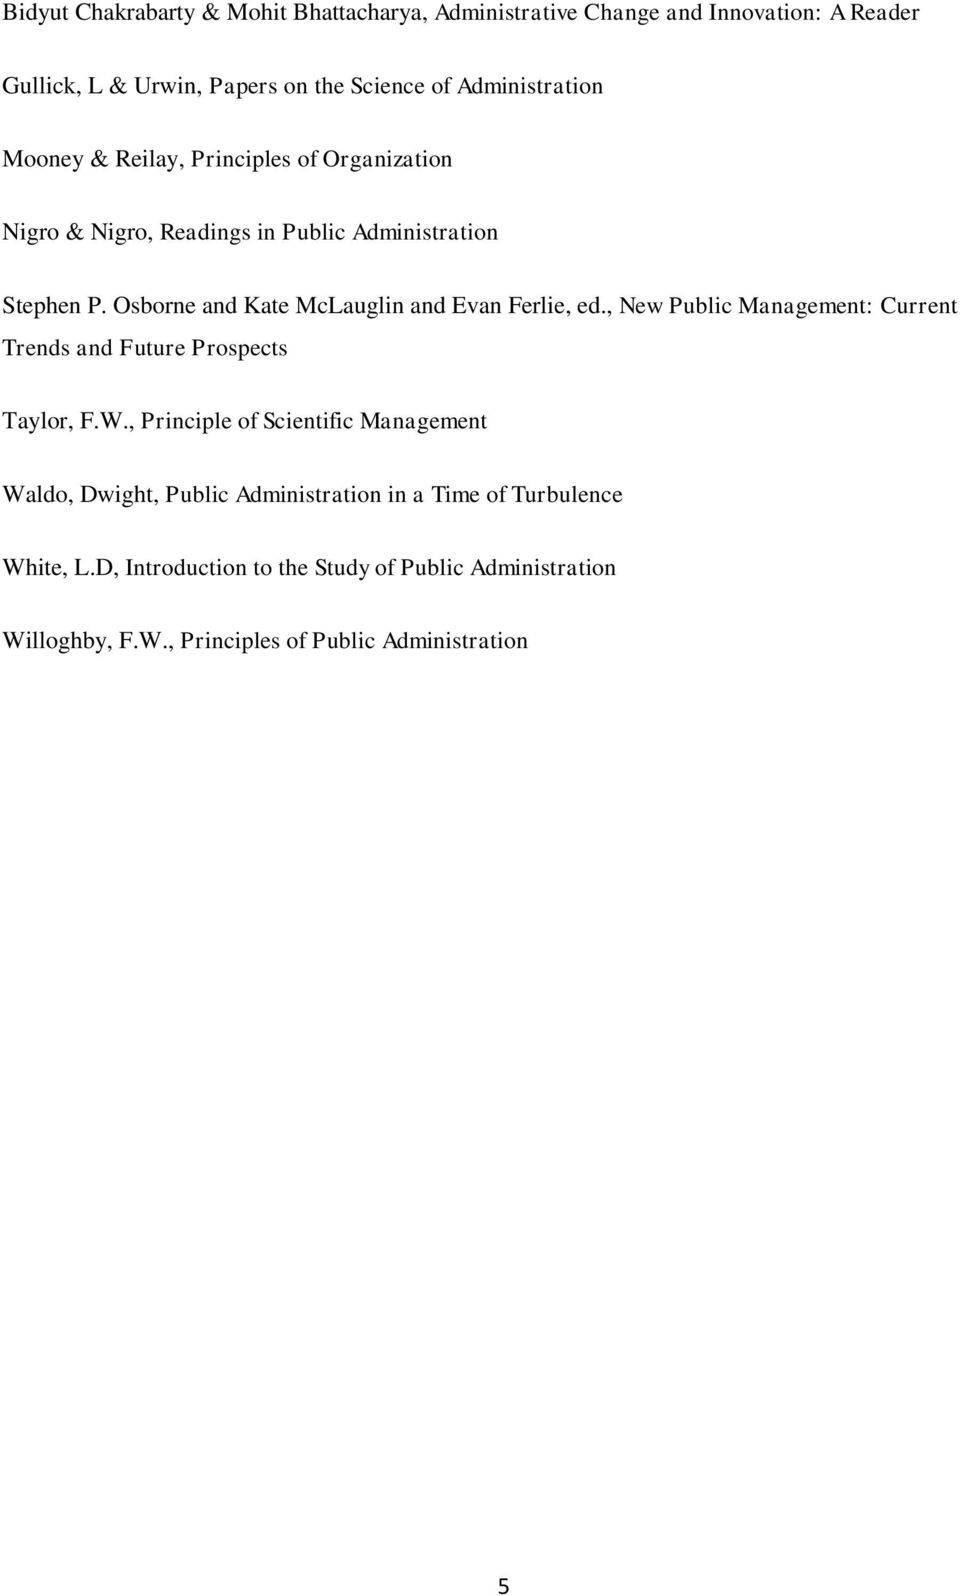 Osborne and Kate McLauglin and Evan Ferlie, ed., New Public Management: Current Trends and Future Prospects Taylor, F.W.